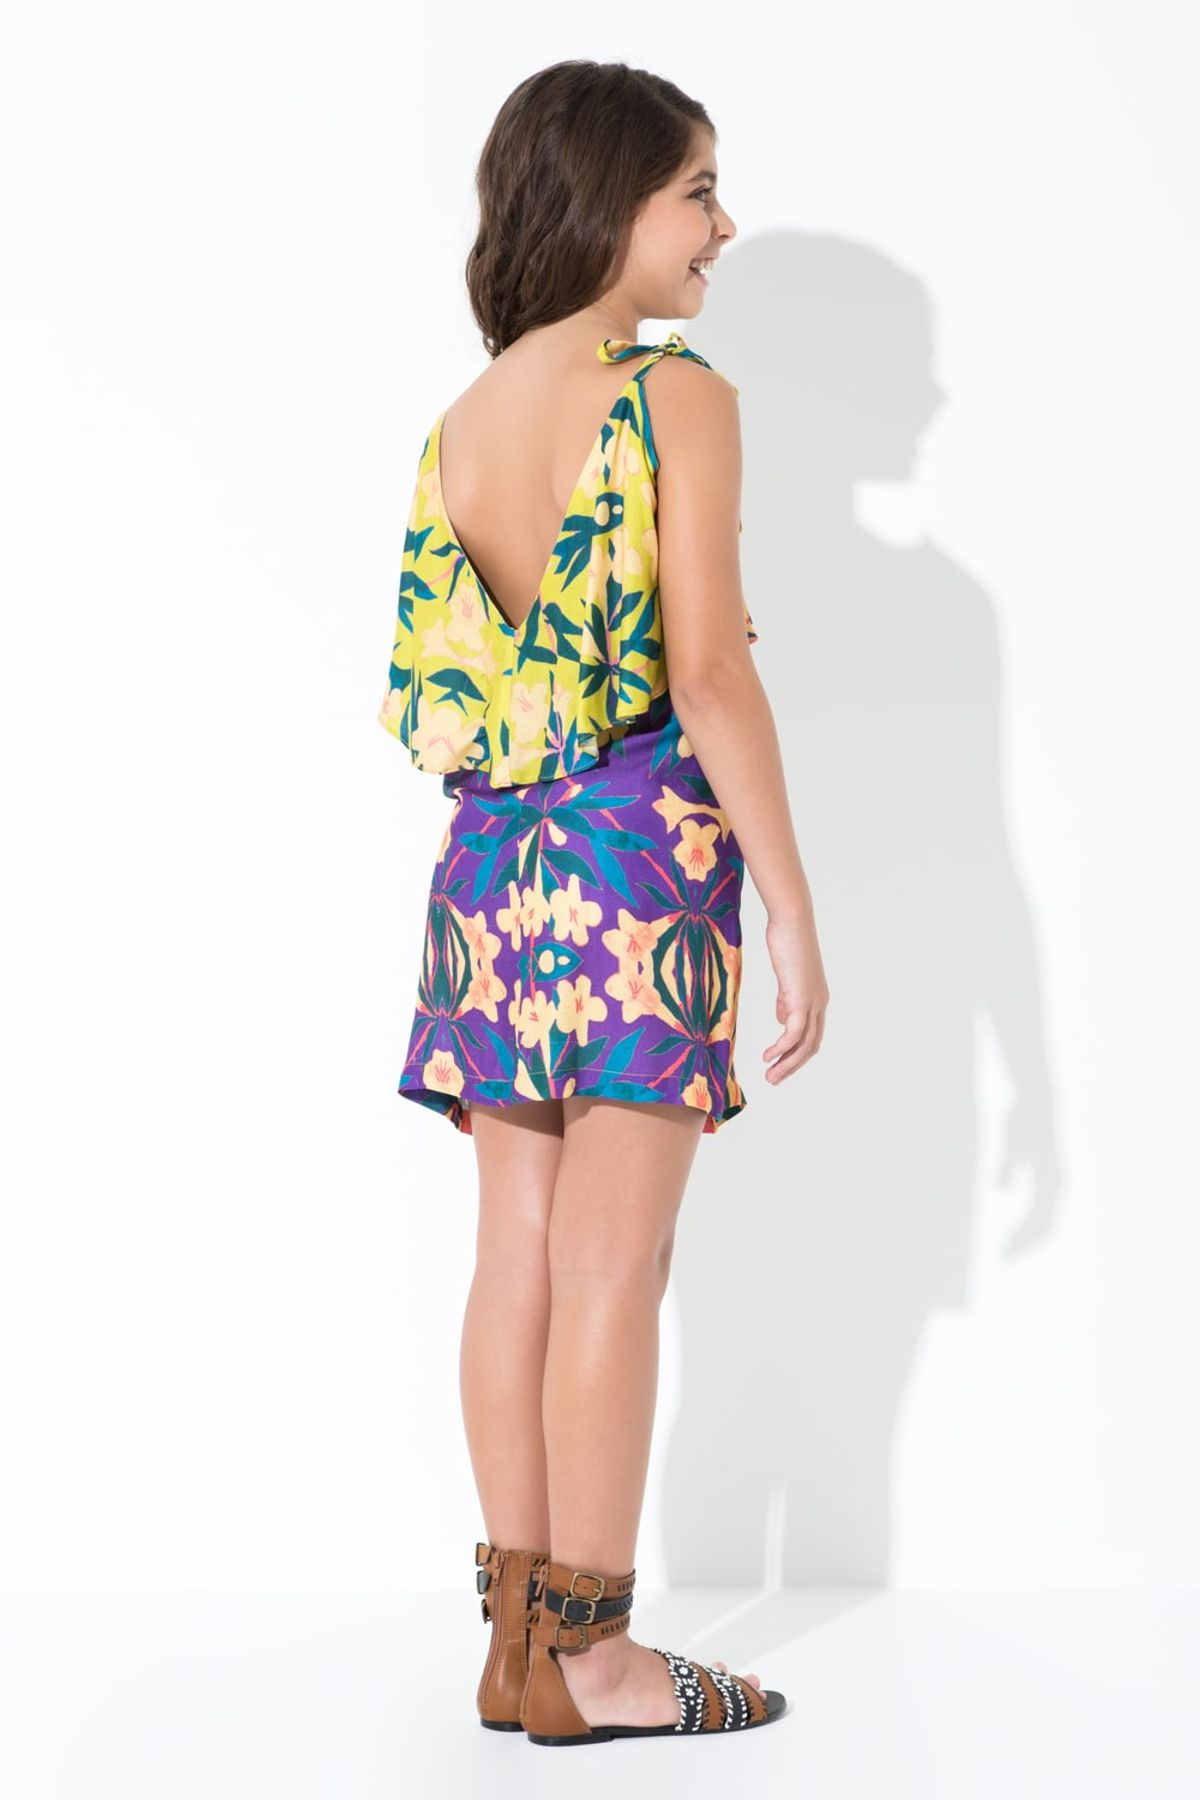 VESTIDO-PATCH-MINI-ME-ESTAMPADO-TROPICALIA-040100440131-OH-BOY